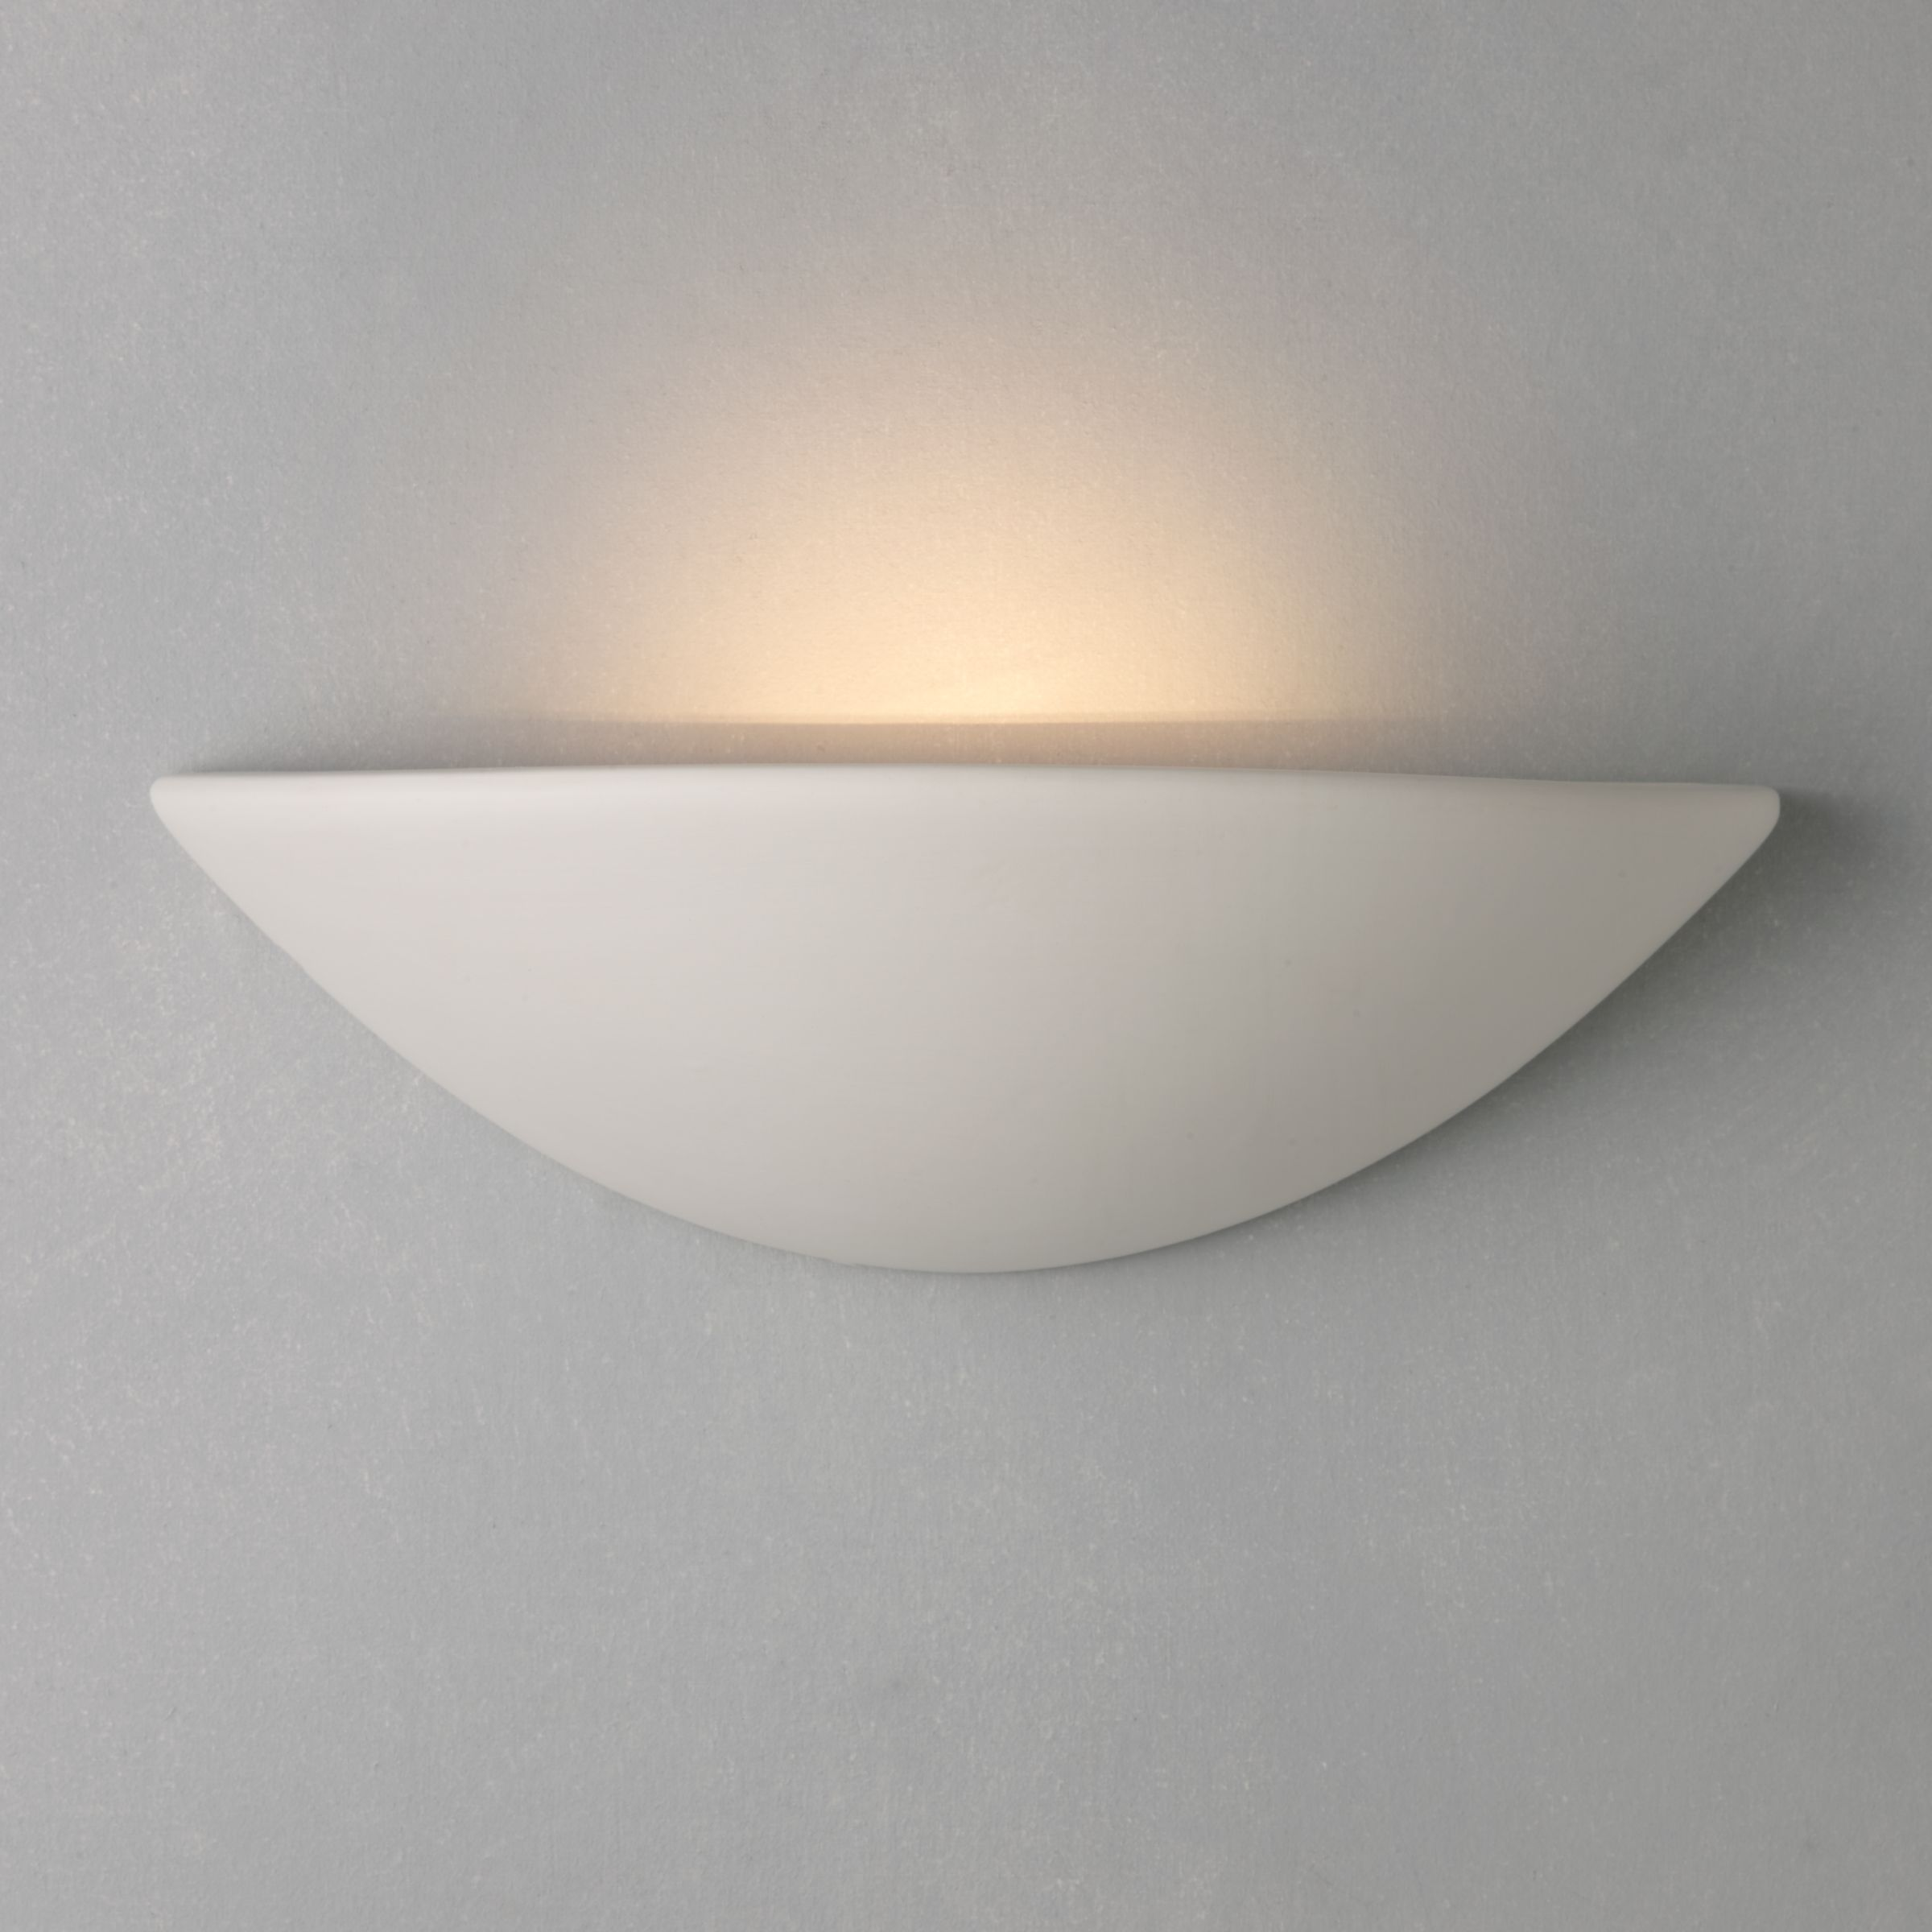 Wall Mounted Lamps John Lewis : Buy John Lewis Radius Uplighter Wall Light, White John Lewis